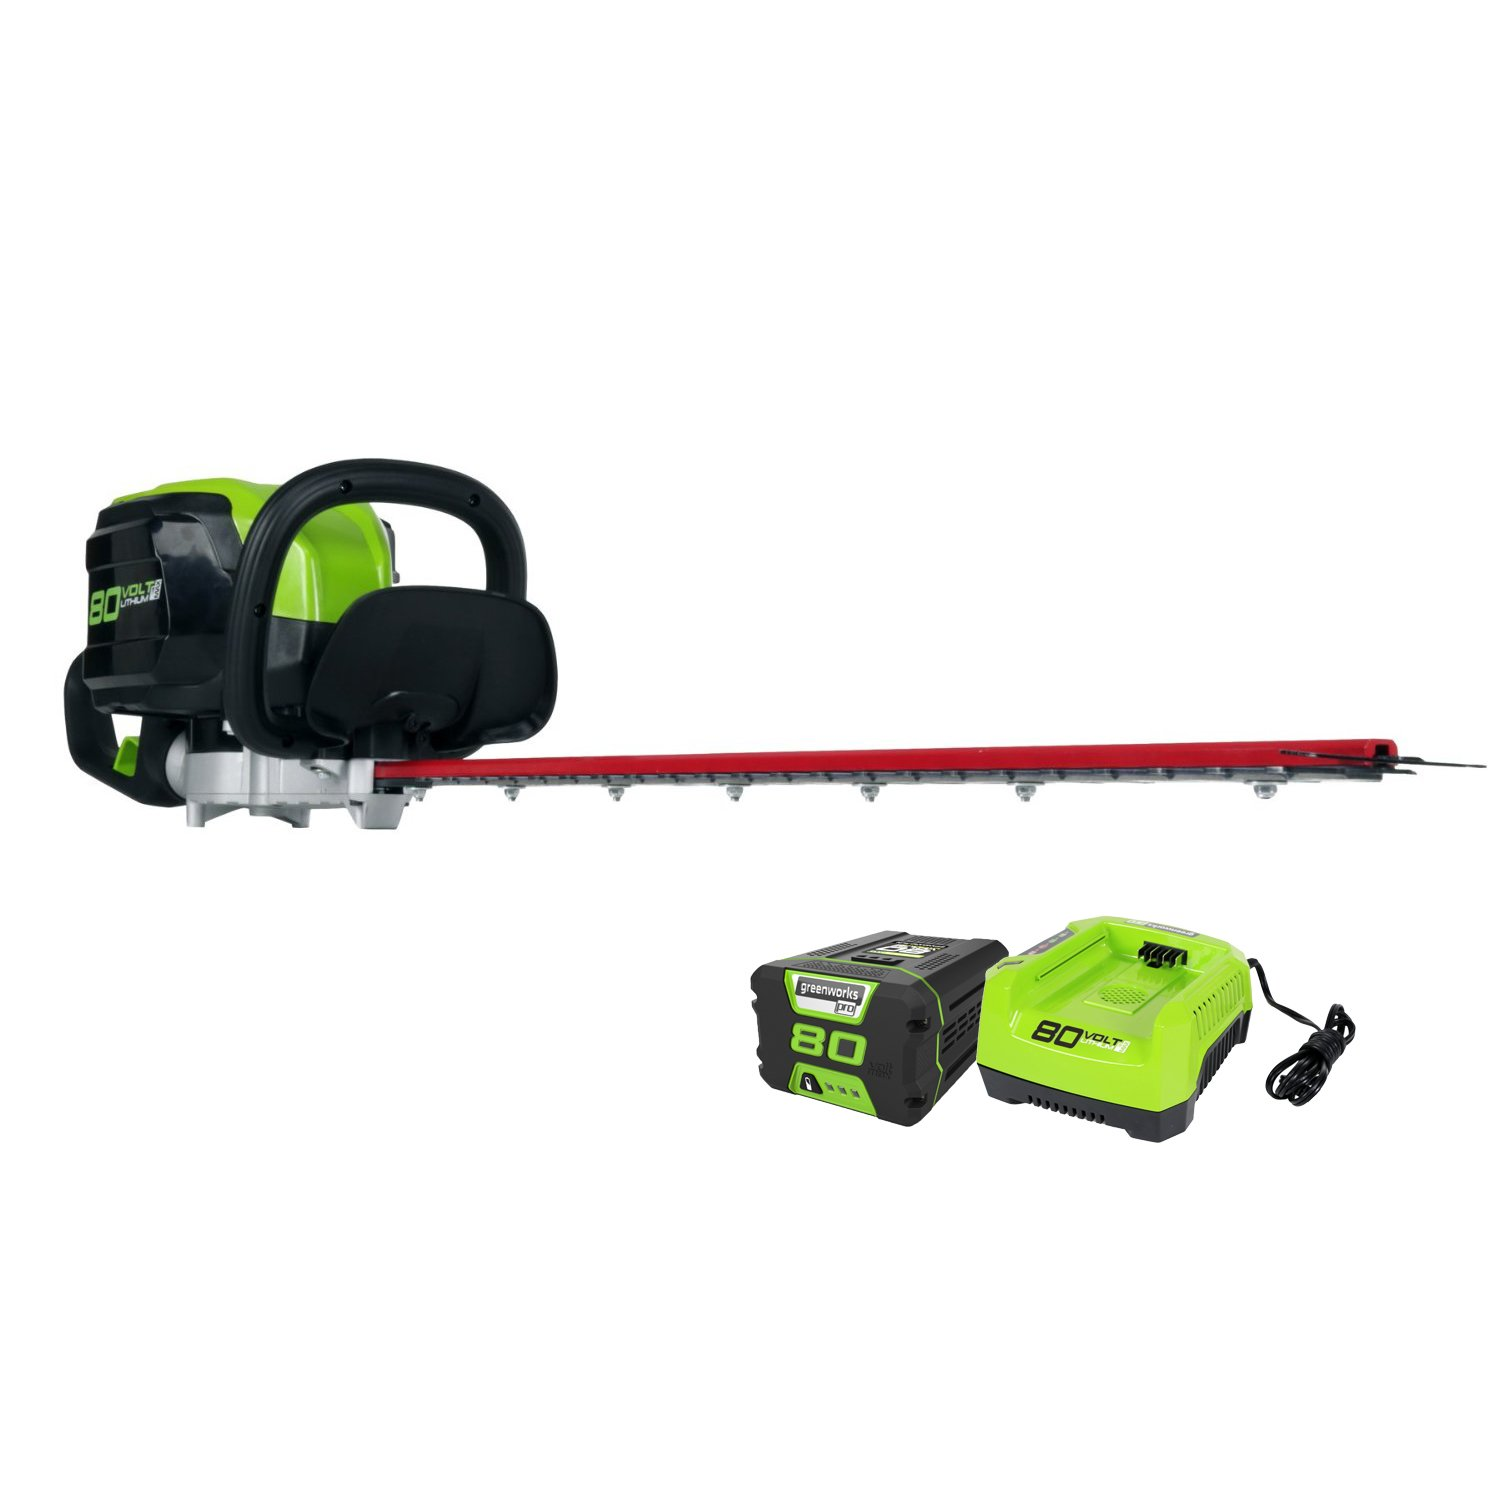 Greenworks PRO 26-Inch 80V Cordless Hedge Trimmer Black Friday Deal